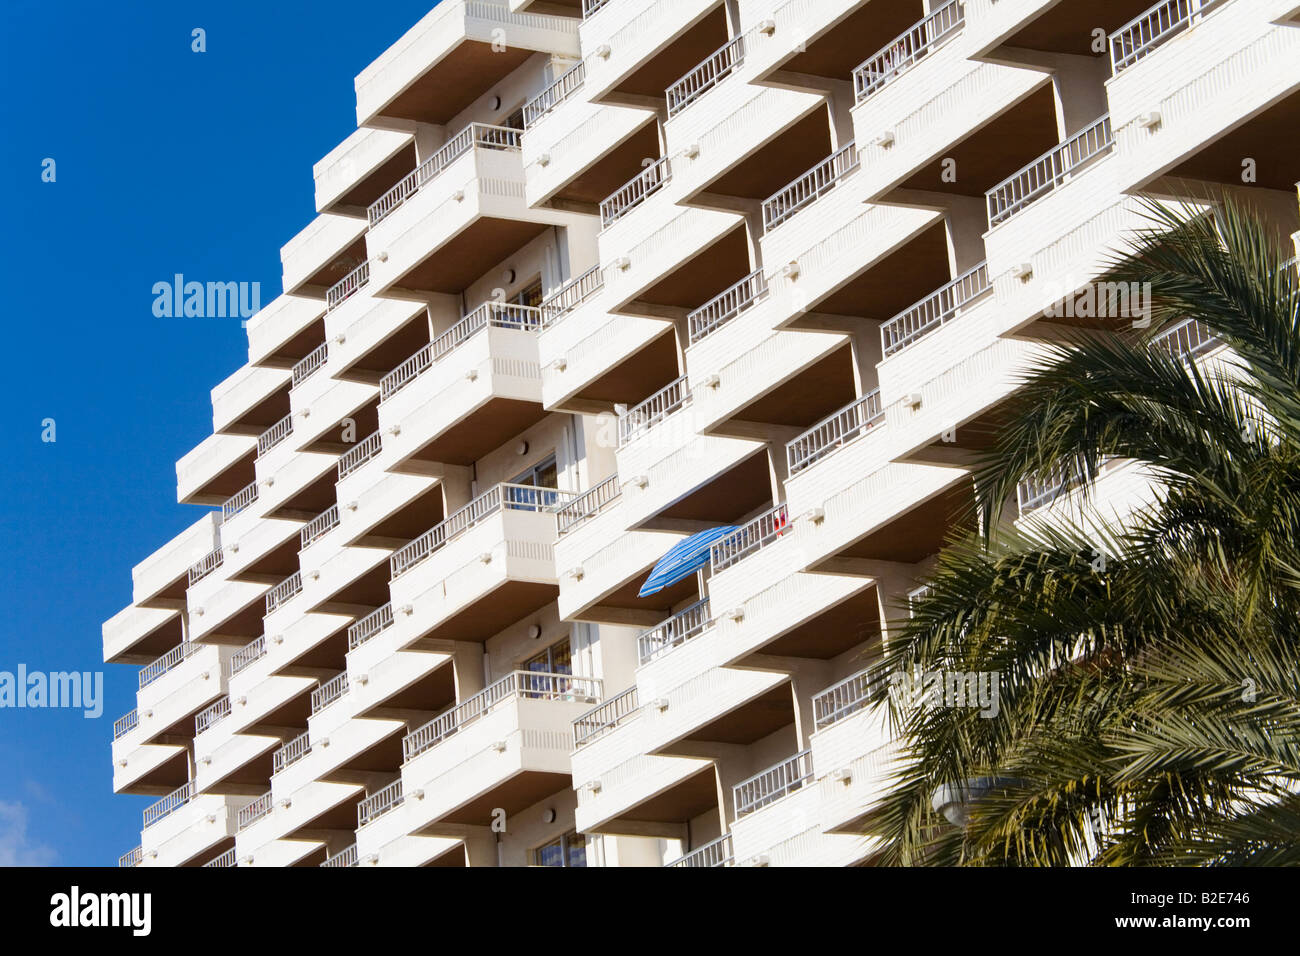 Balconies of apartment building forming repetitive pattern Torremolinos Costa del Sol Malaga Province Spain - Stock Image